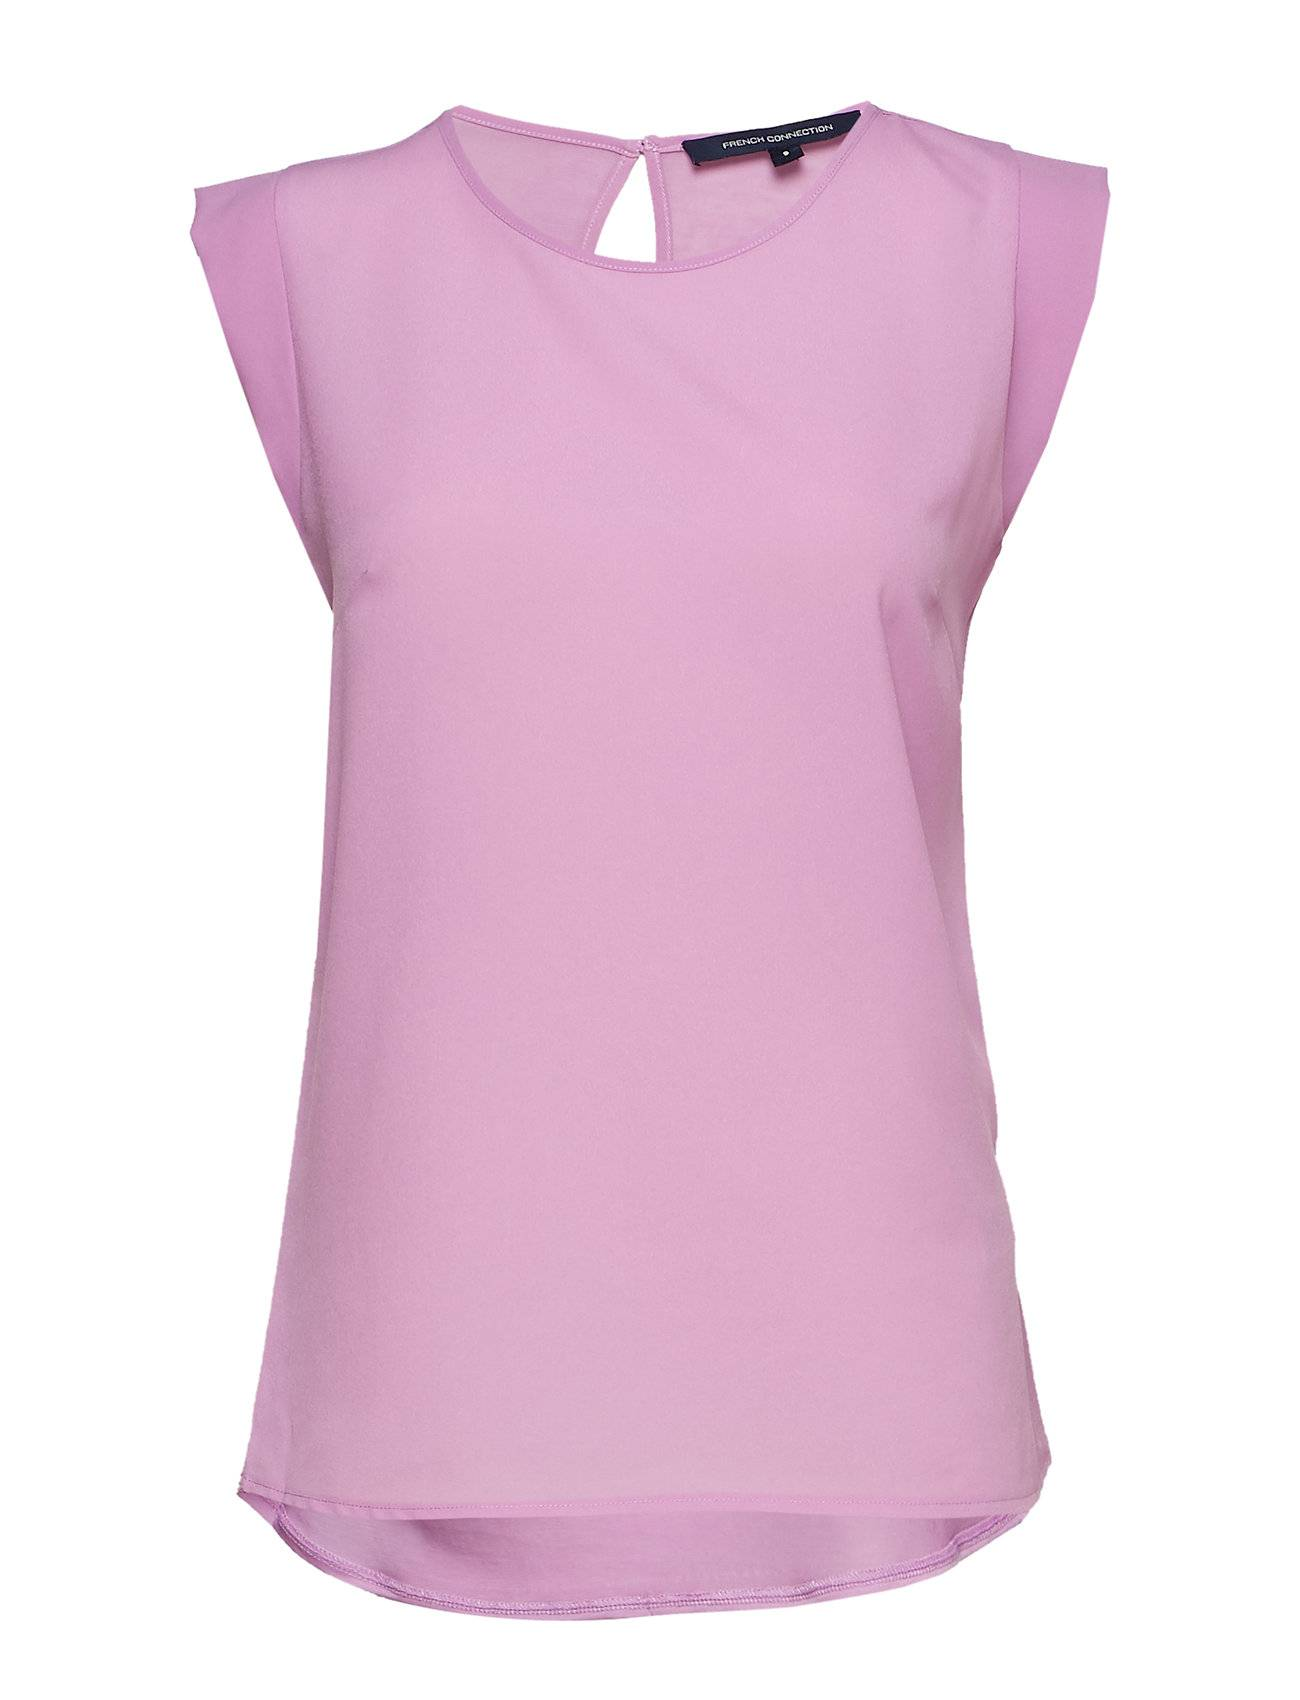 French Connection Crepe Light Solid Jersey Cap Sleeve Top